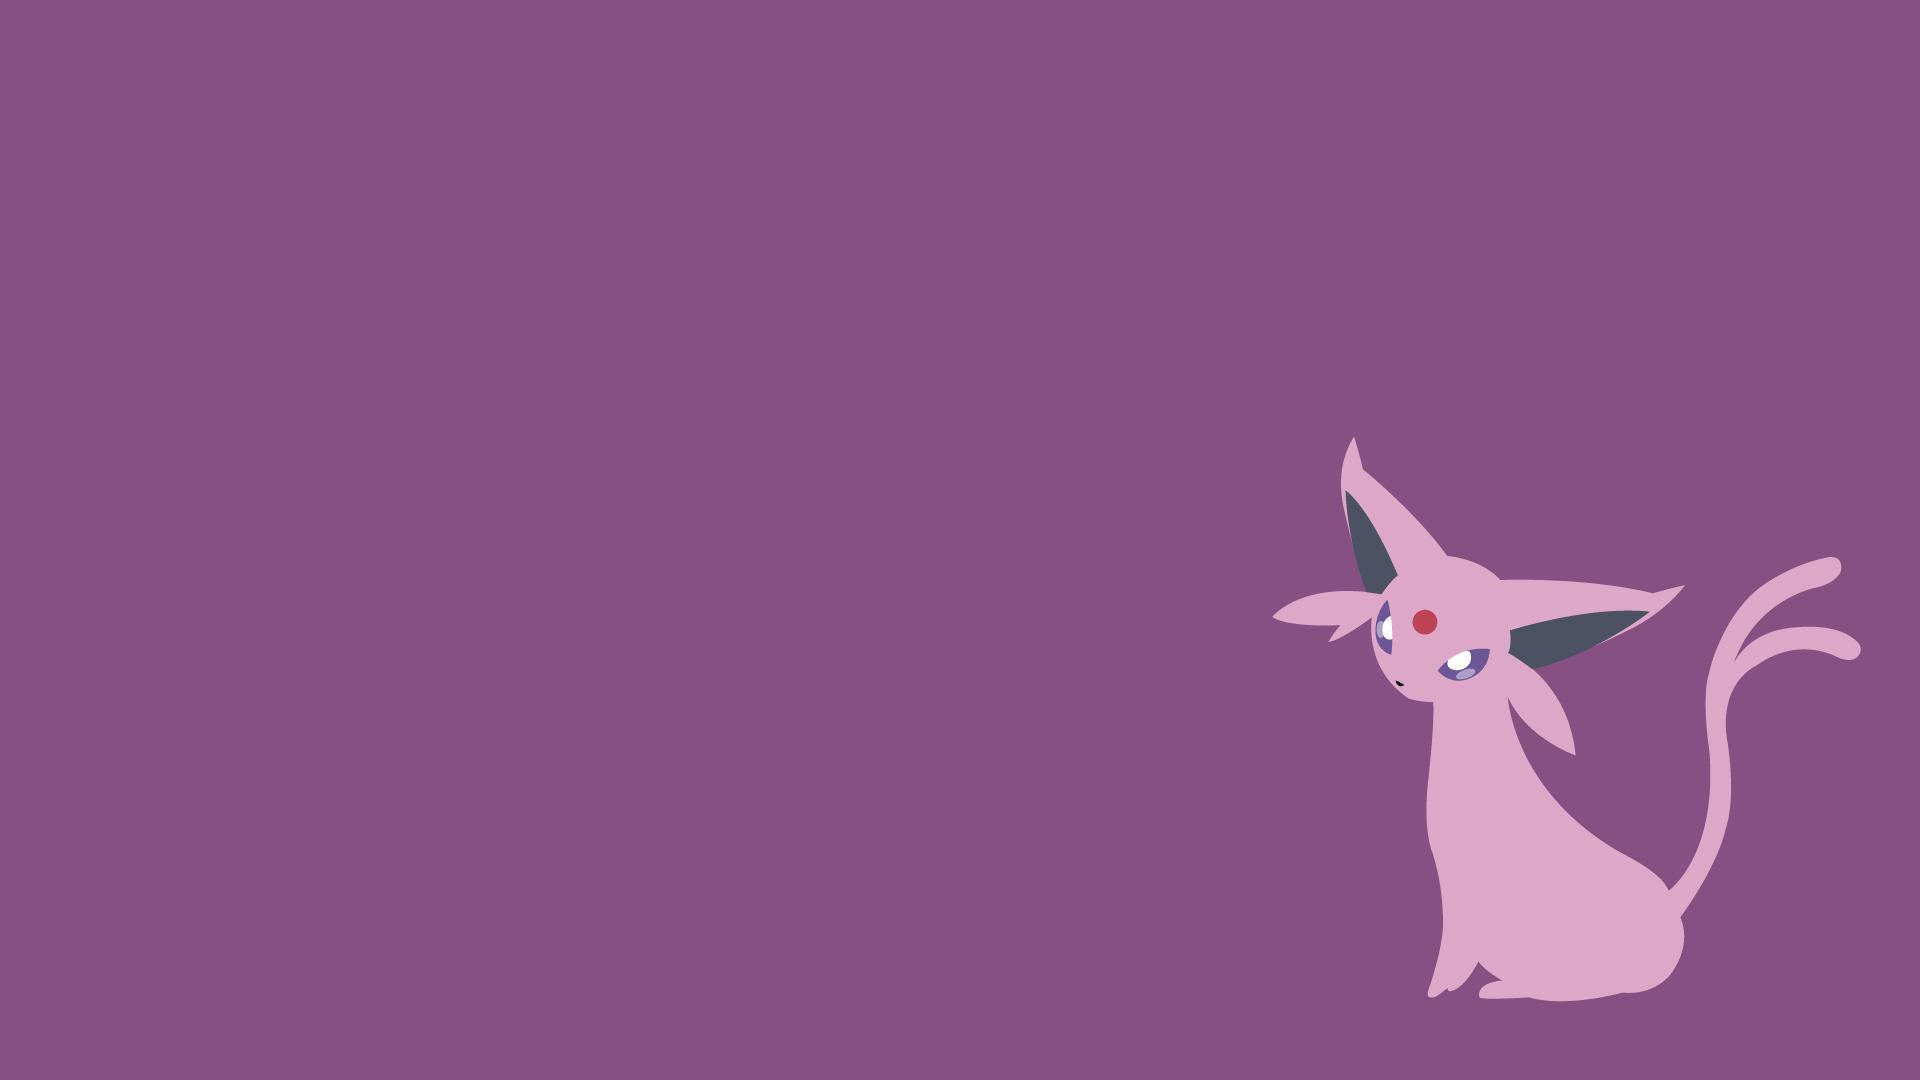 Espeon Wallpapers HD - Wallpapercraft